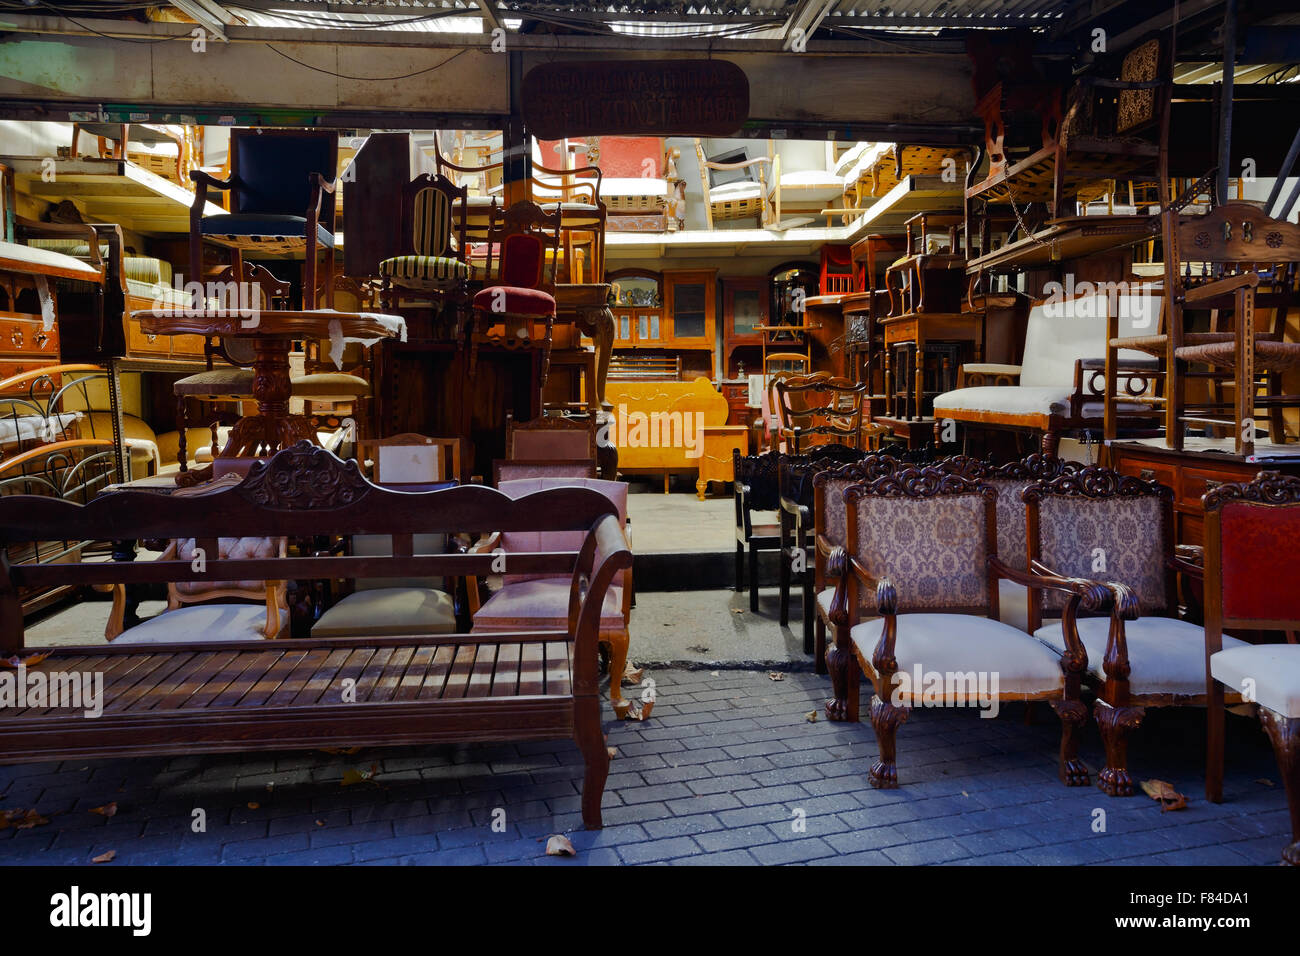 Antique furniture shop in the flea market in the Monastiraki area in Plaka, Athens. - Stock Image